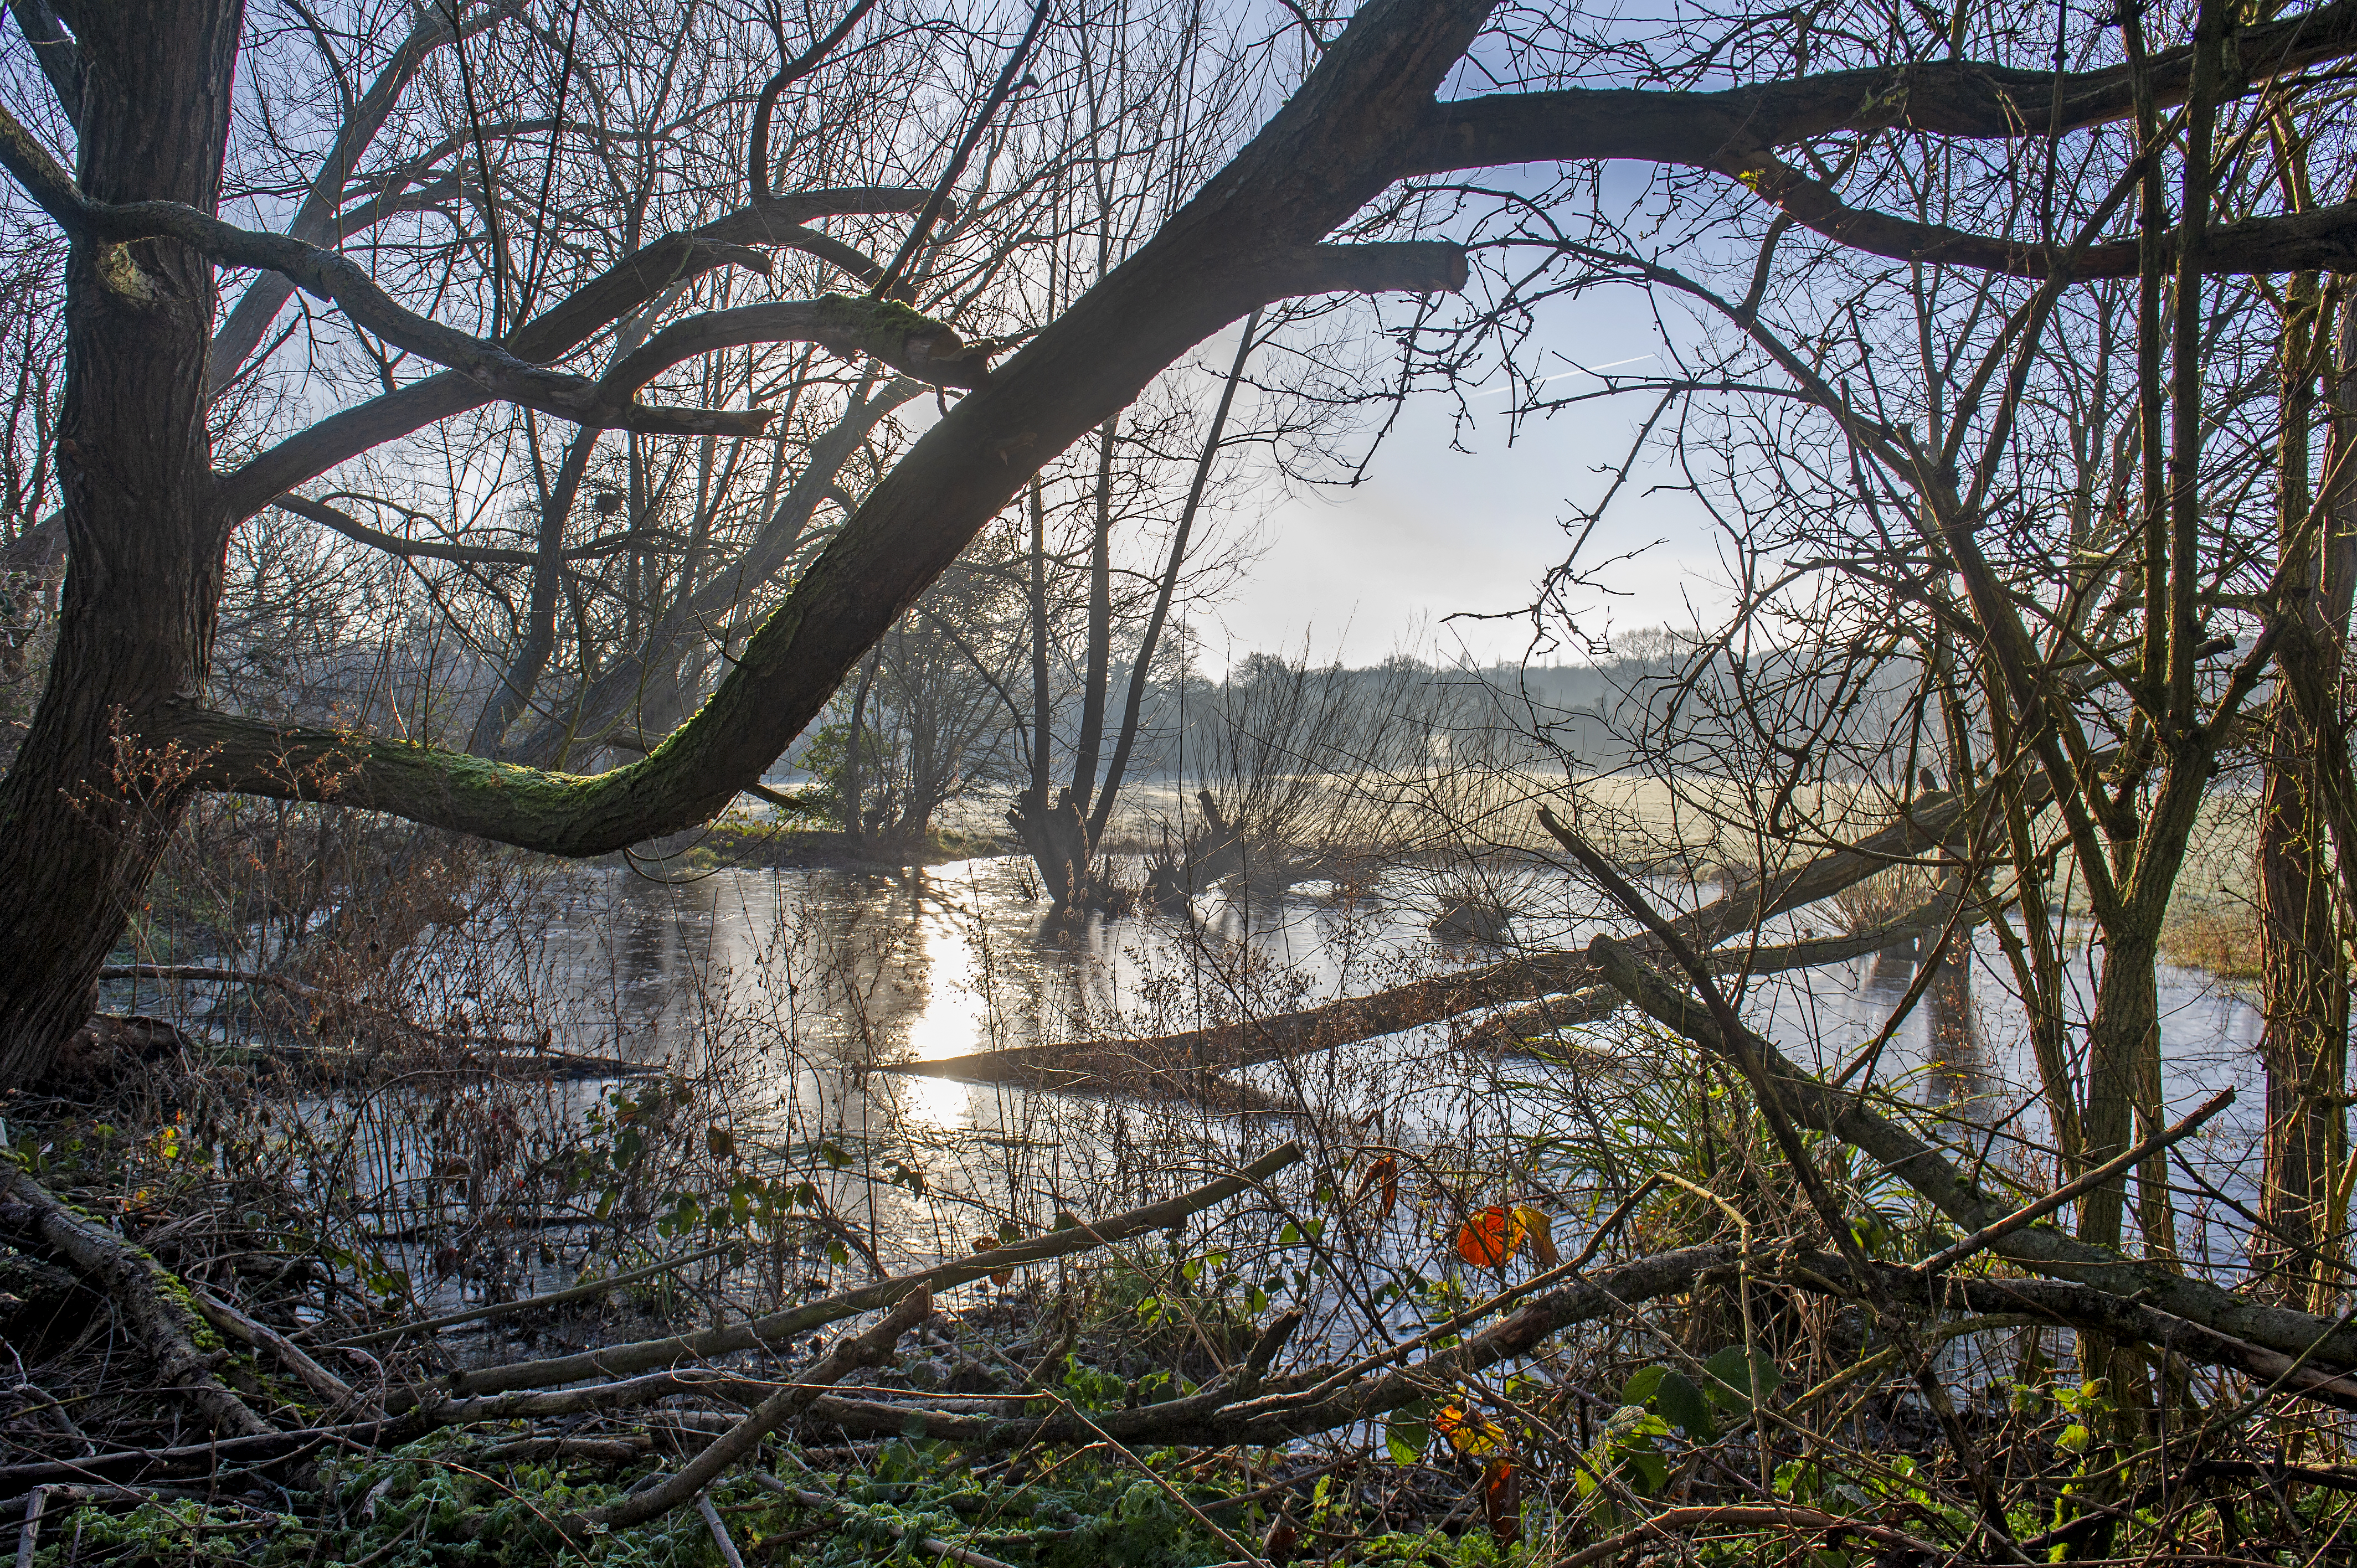 Fryant country park